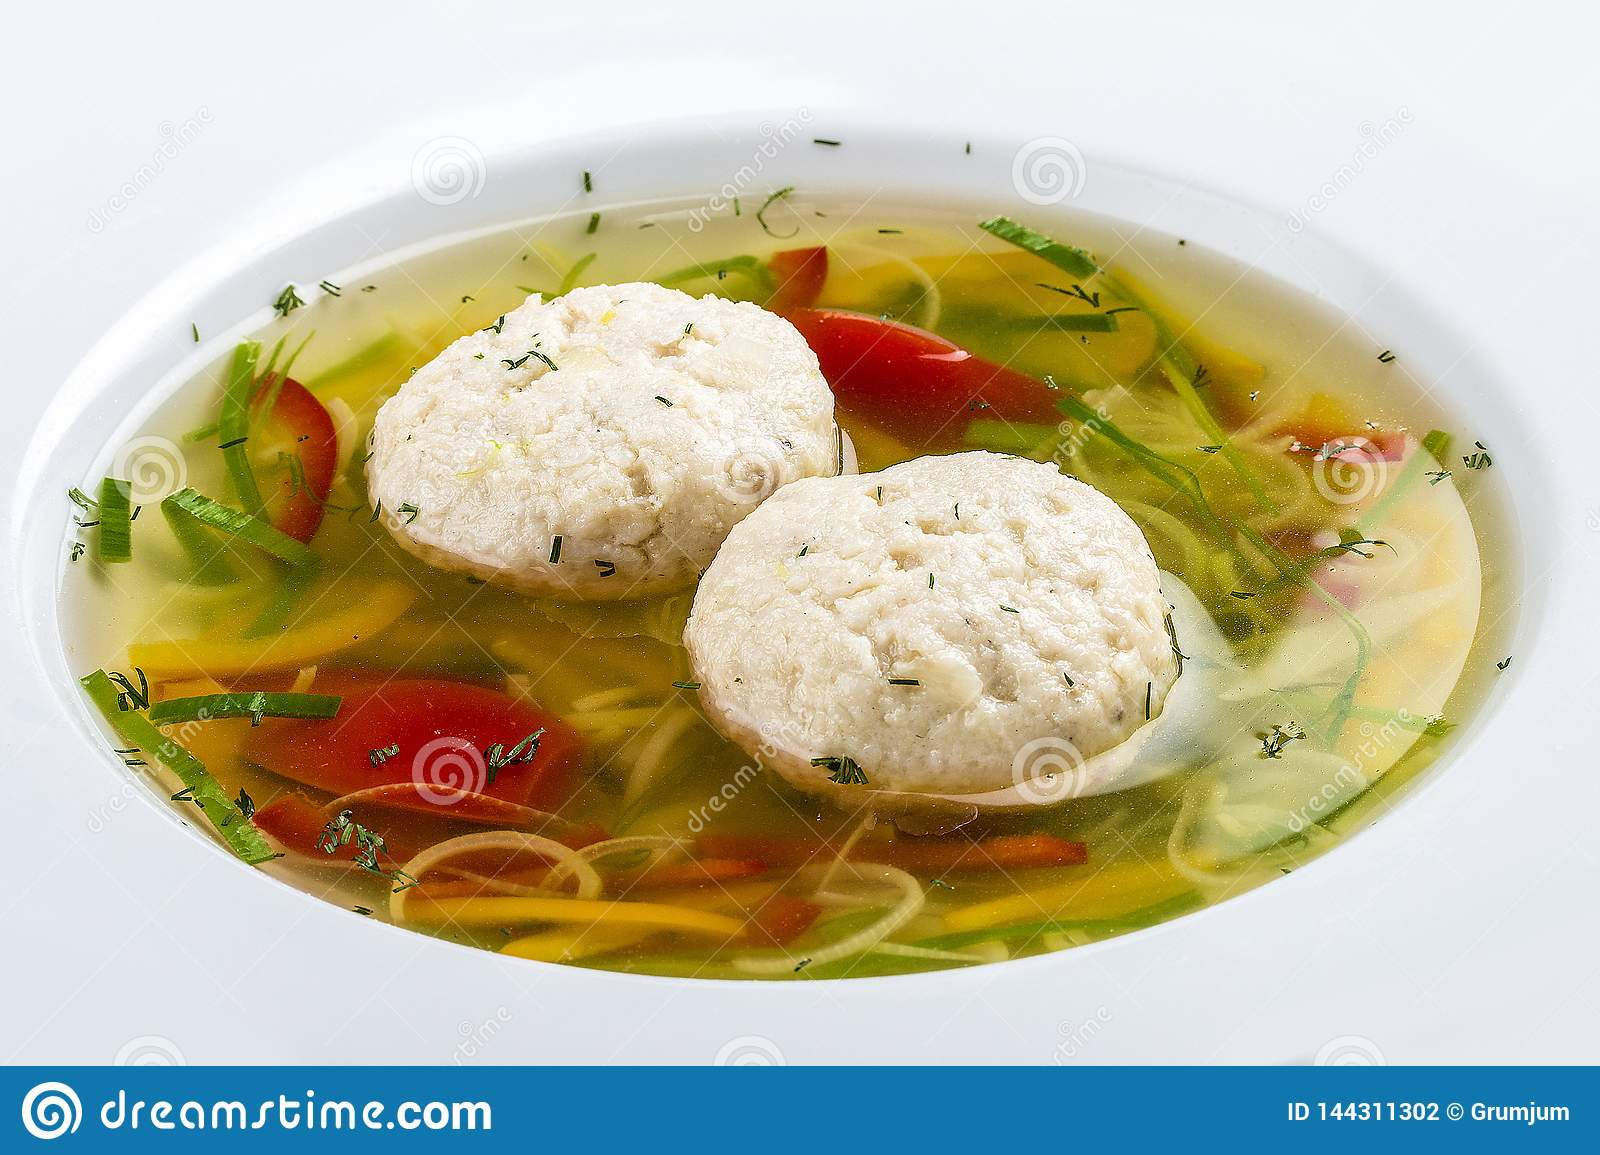 Soup with dumplings from a pike perch